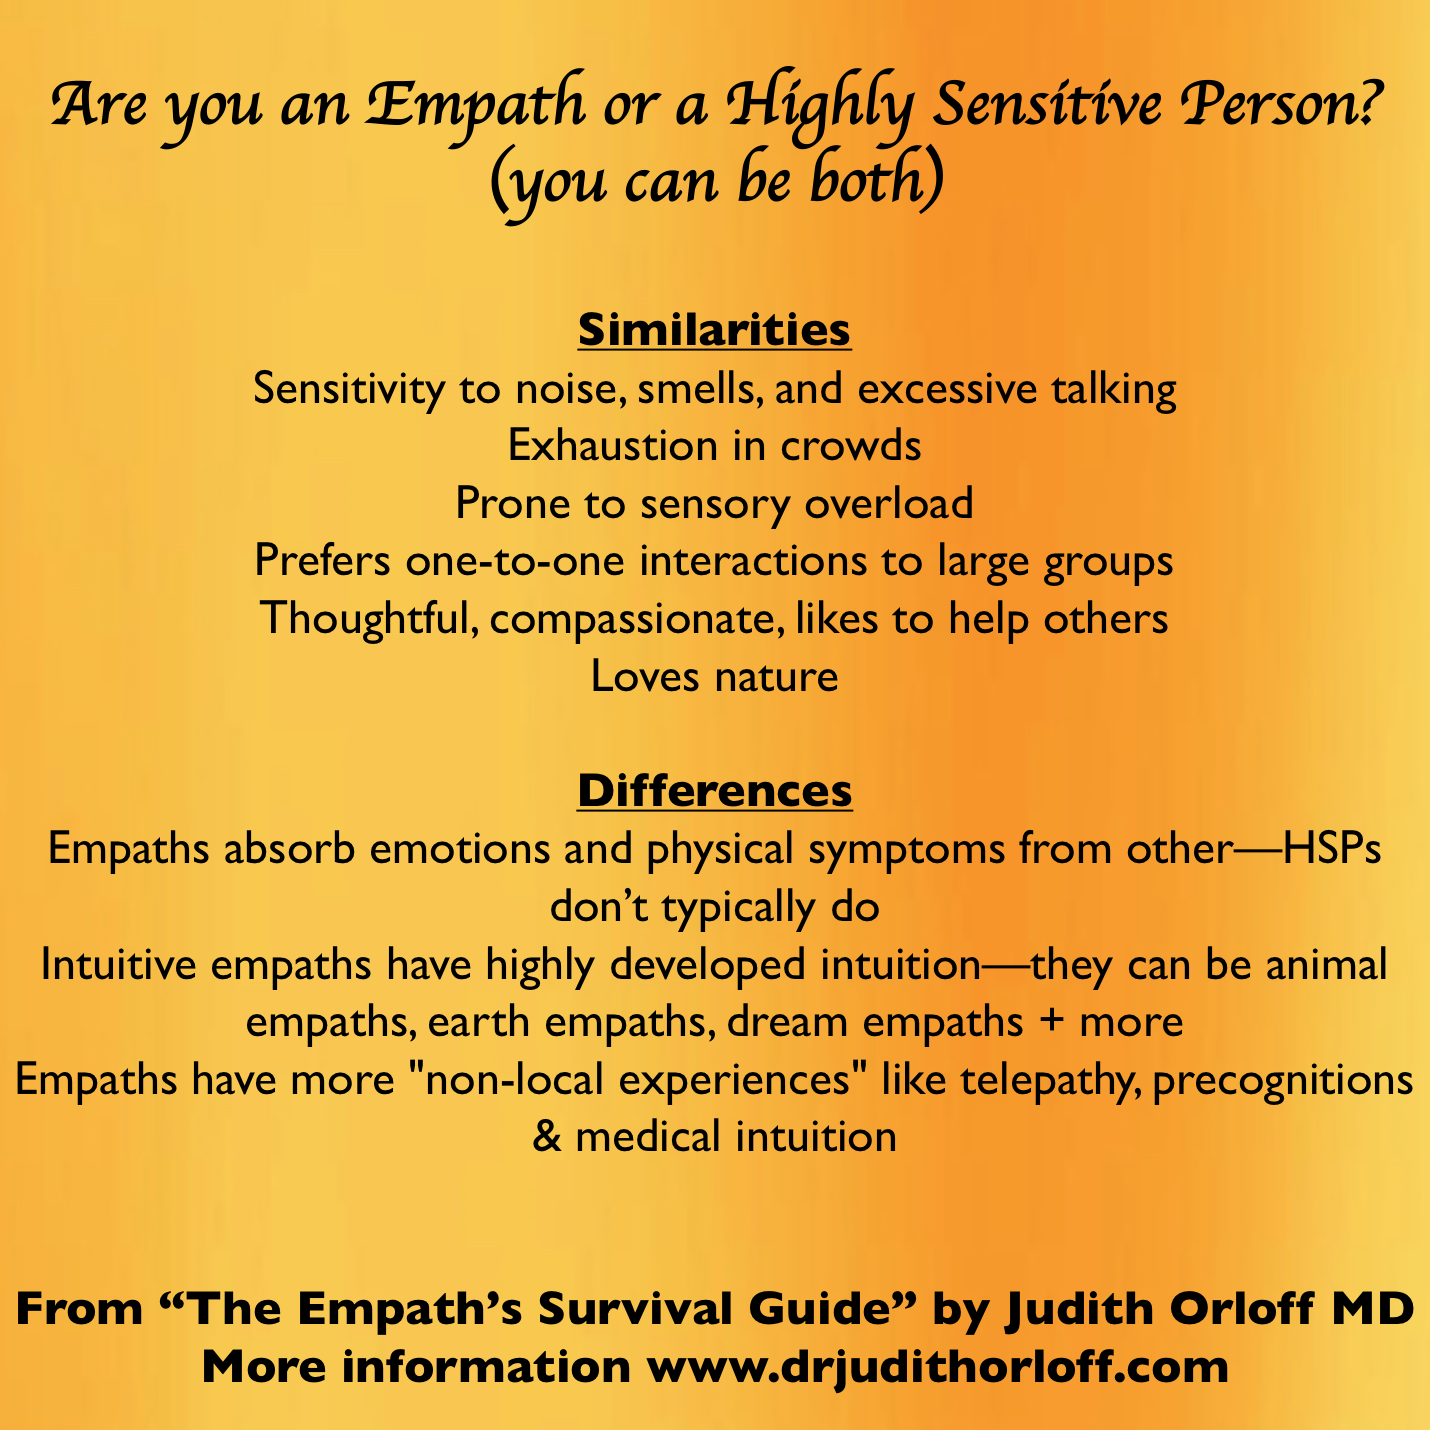 Pin by Chelsea Stewart on Empath | Intuitive empath, Highly